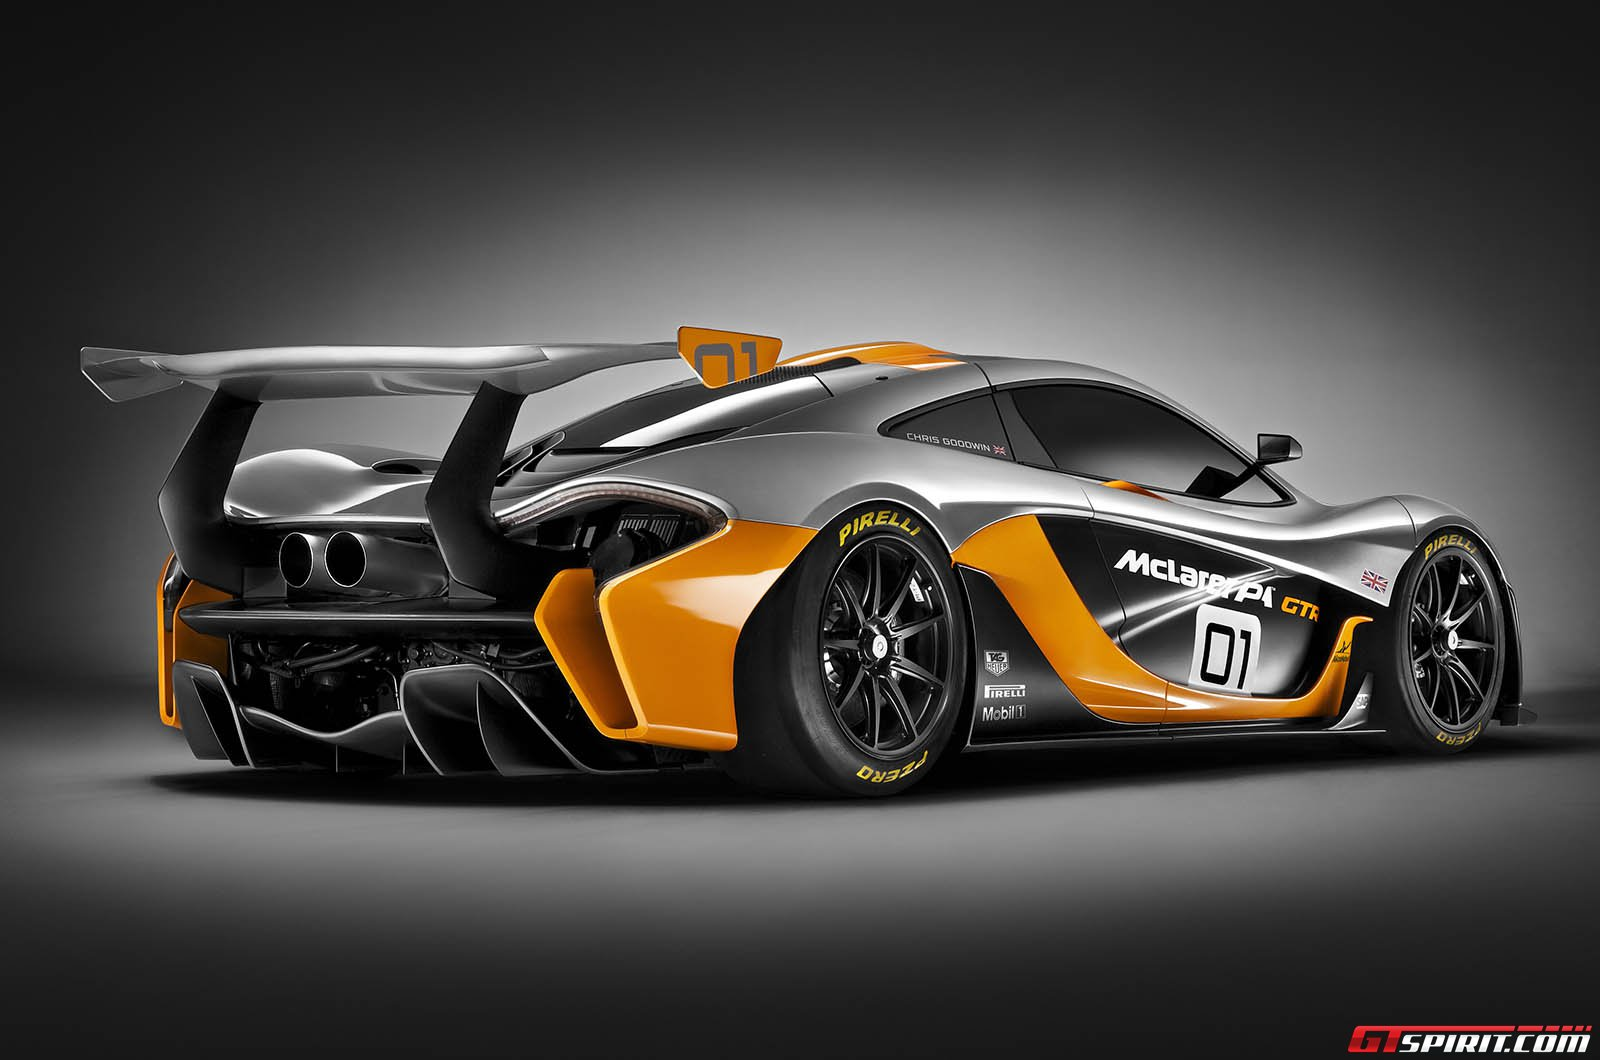 official mclaren p1 gtr design concept gtspirit. Black Bedroom Furniture Sets. Home Design Ideas